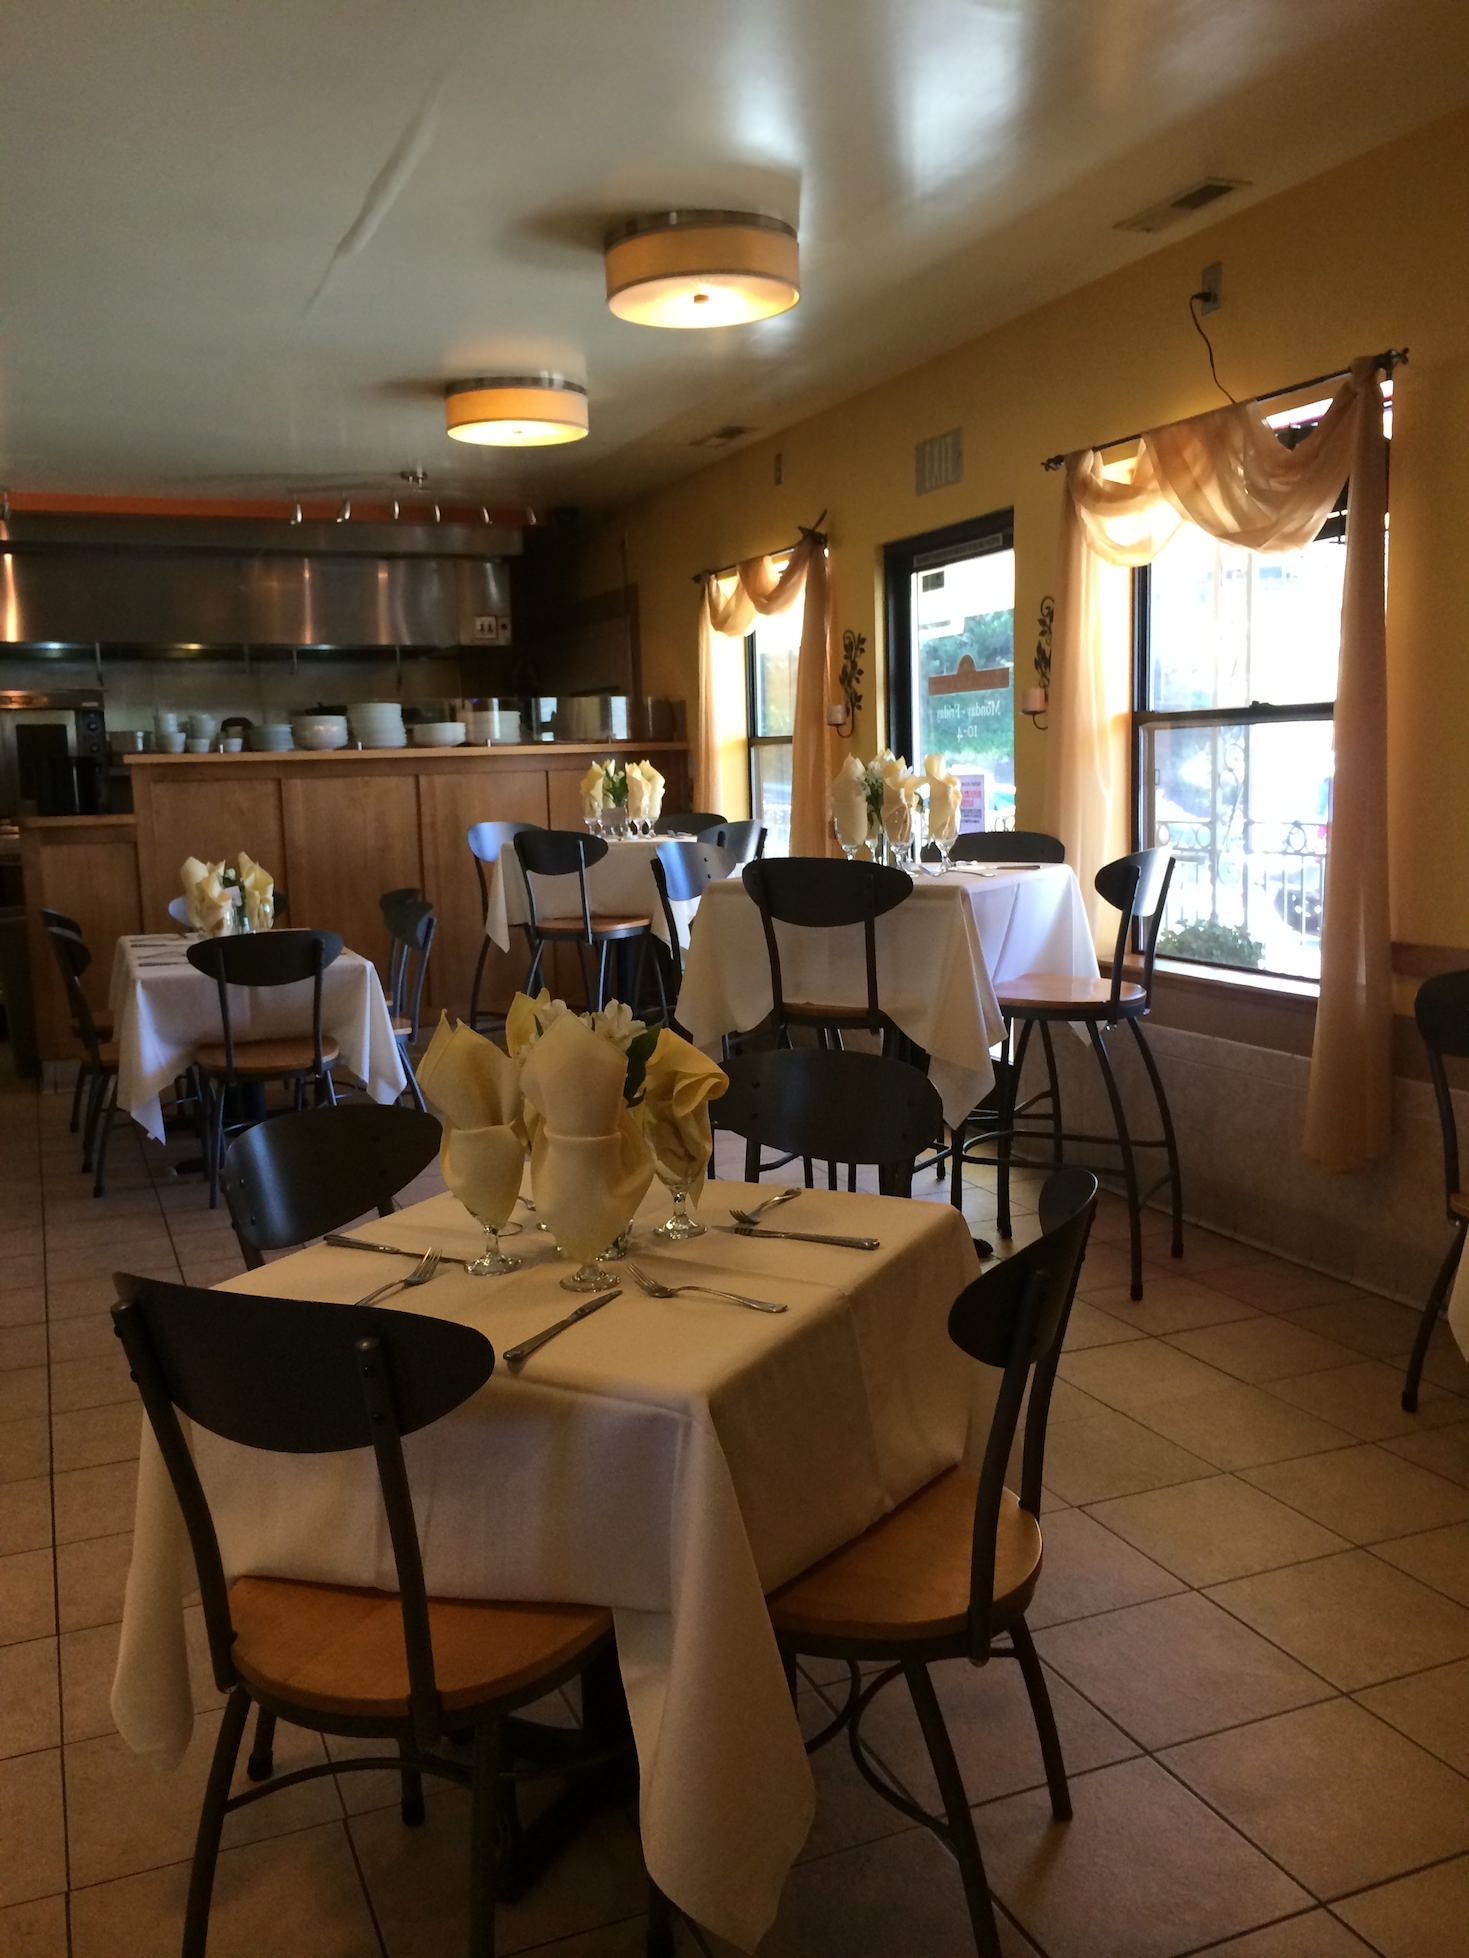 Amador county restaurant realty company for 10 x 11 room square feet